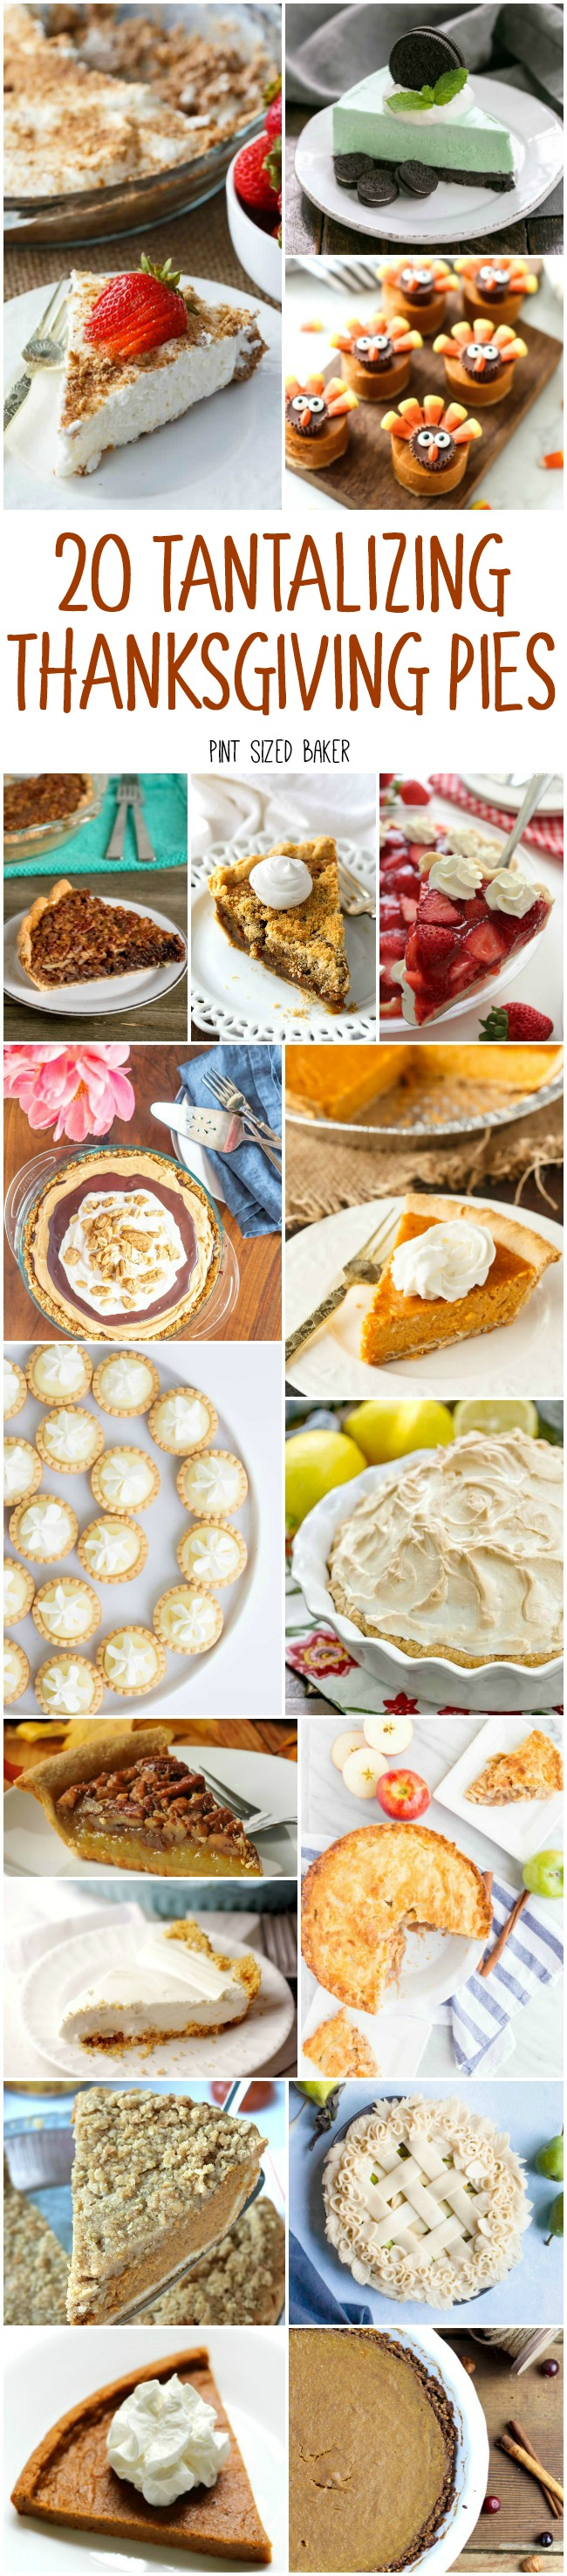 've got 20 Tantalizing Thanksgiving Pies for your fall dessert planning. There are classic pie recipes, some no-bake pies, and a few unique flavors to try.